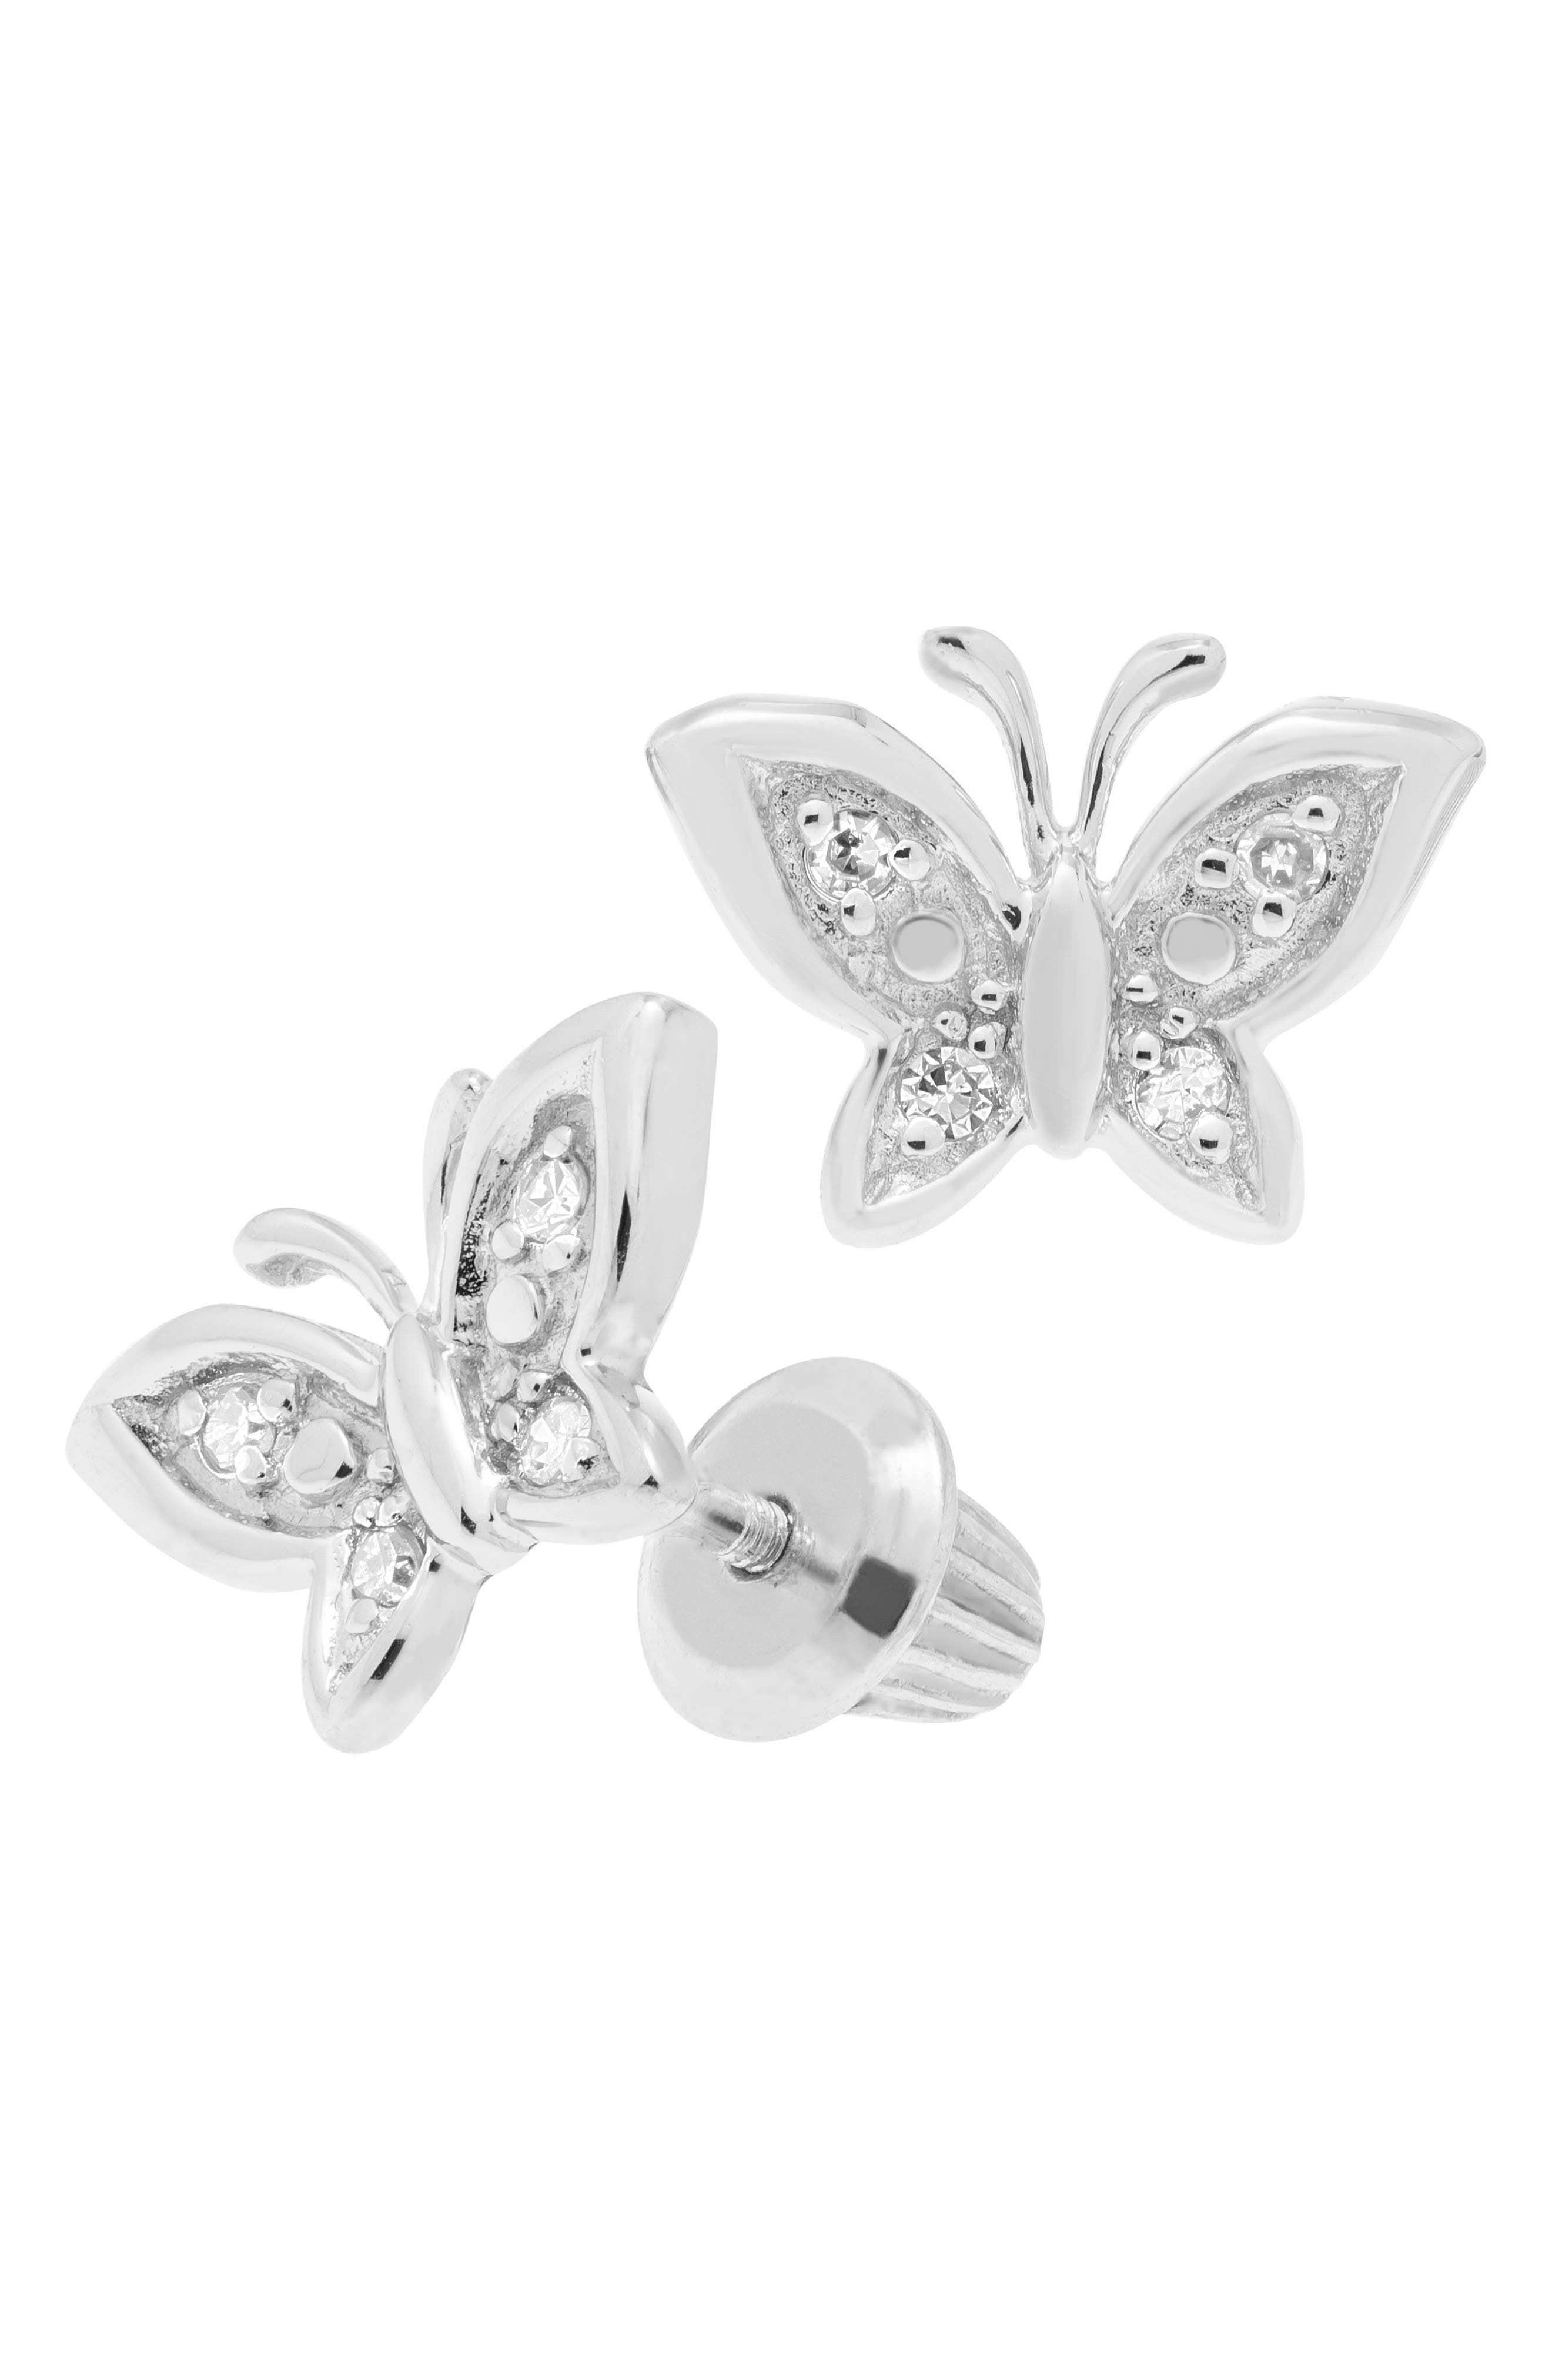 Main Image - Mignonette Sterling Silver & Diamond Butterfly Stud Earrings